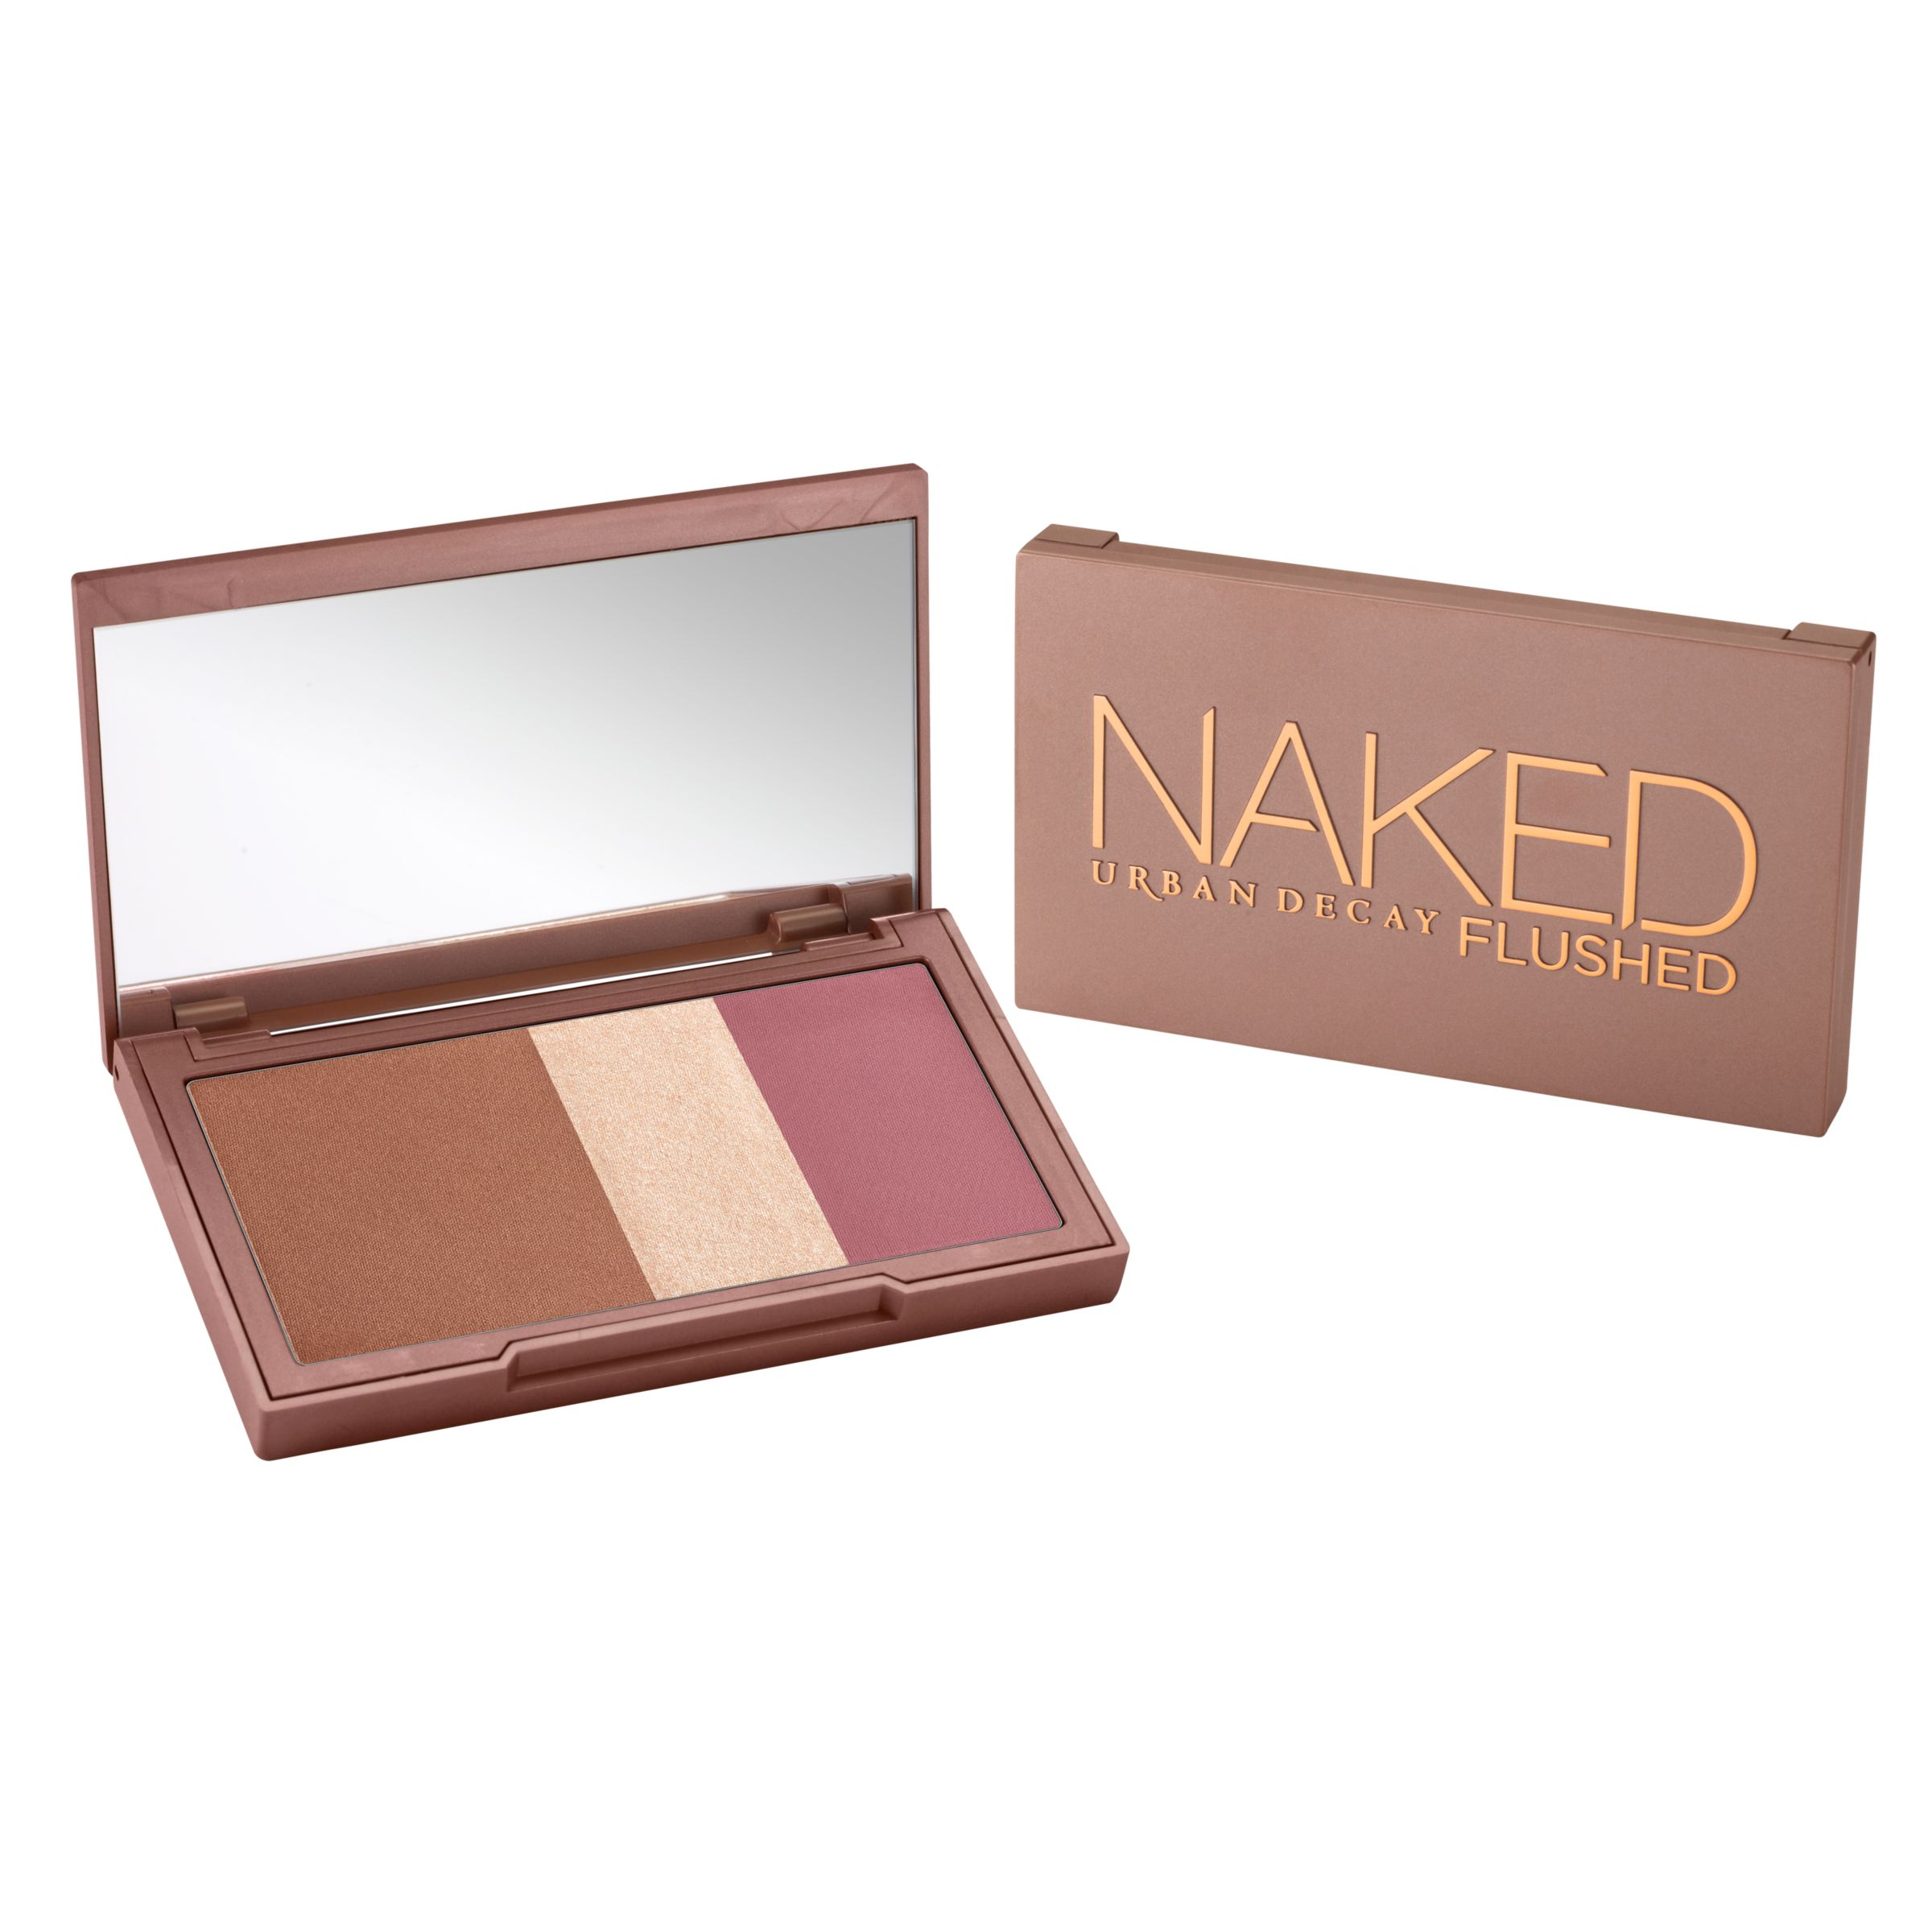 Urban Decay Urban Decay Naked Flushed